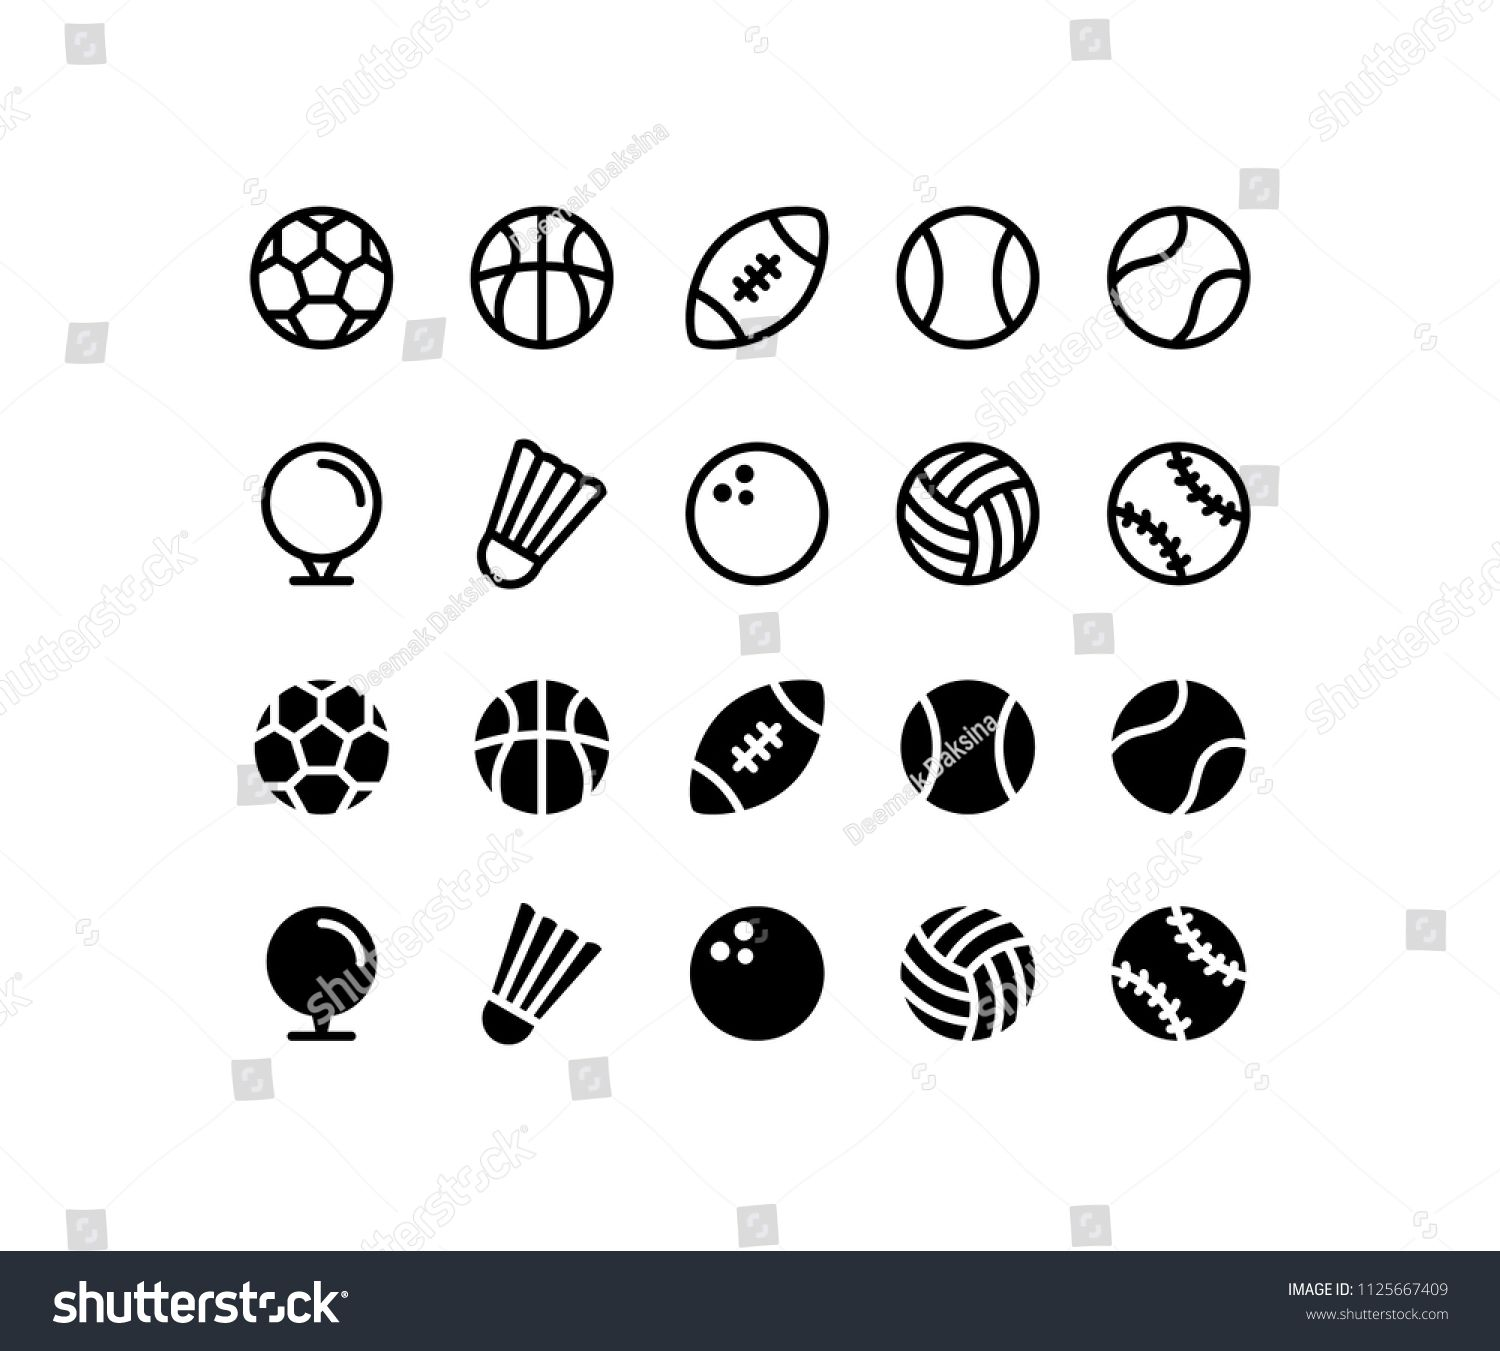 Sports Ball Icon Set Football Basketball Ball Baseball Tennis Soccer Sport Game Golf Volleyball Rugby Bowling Badminto Sport Icon Icon Design Icon